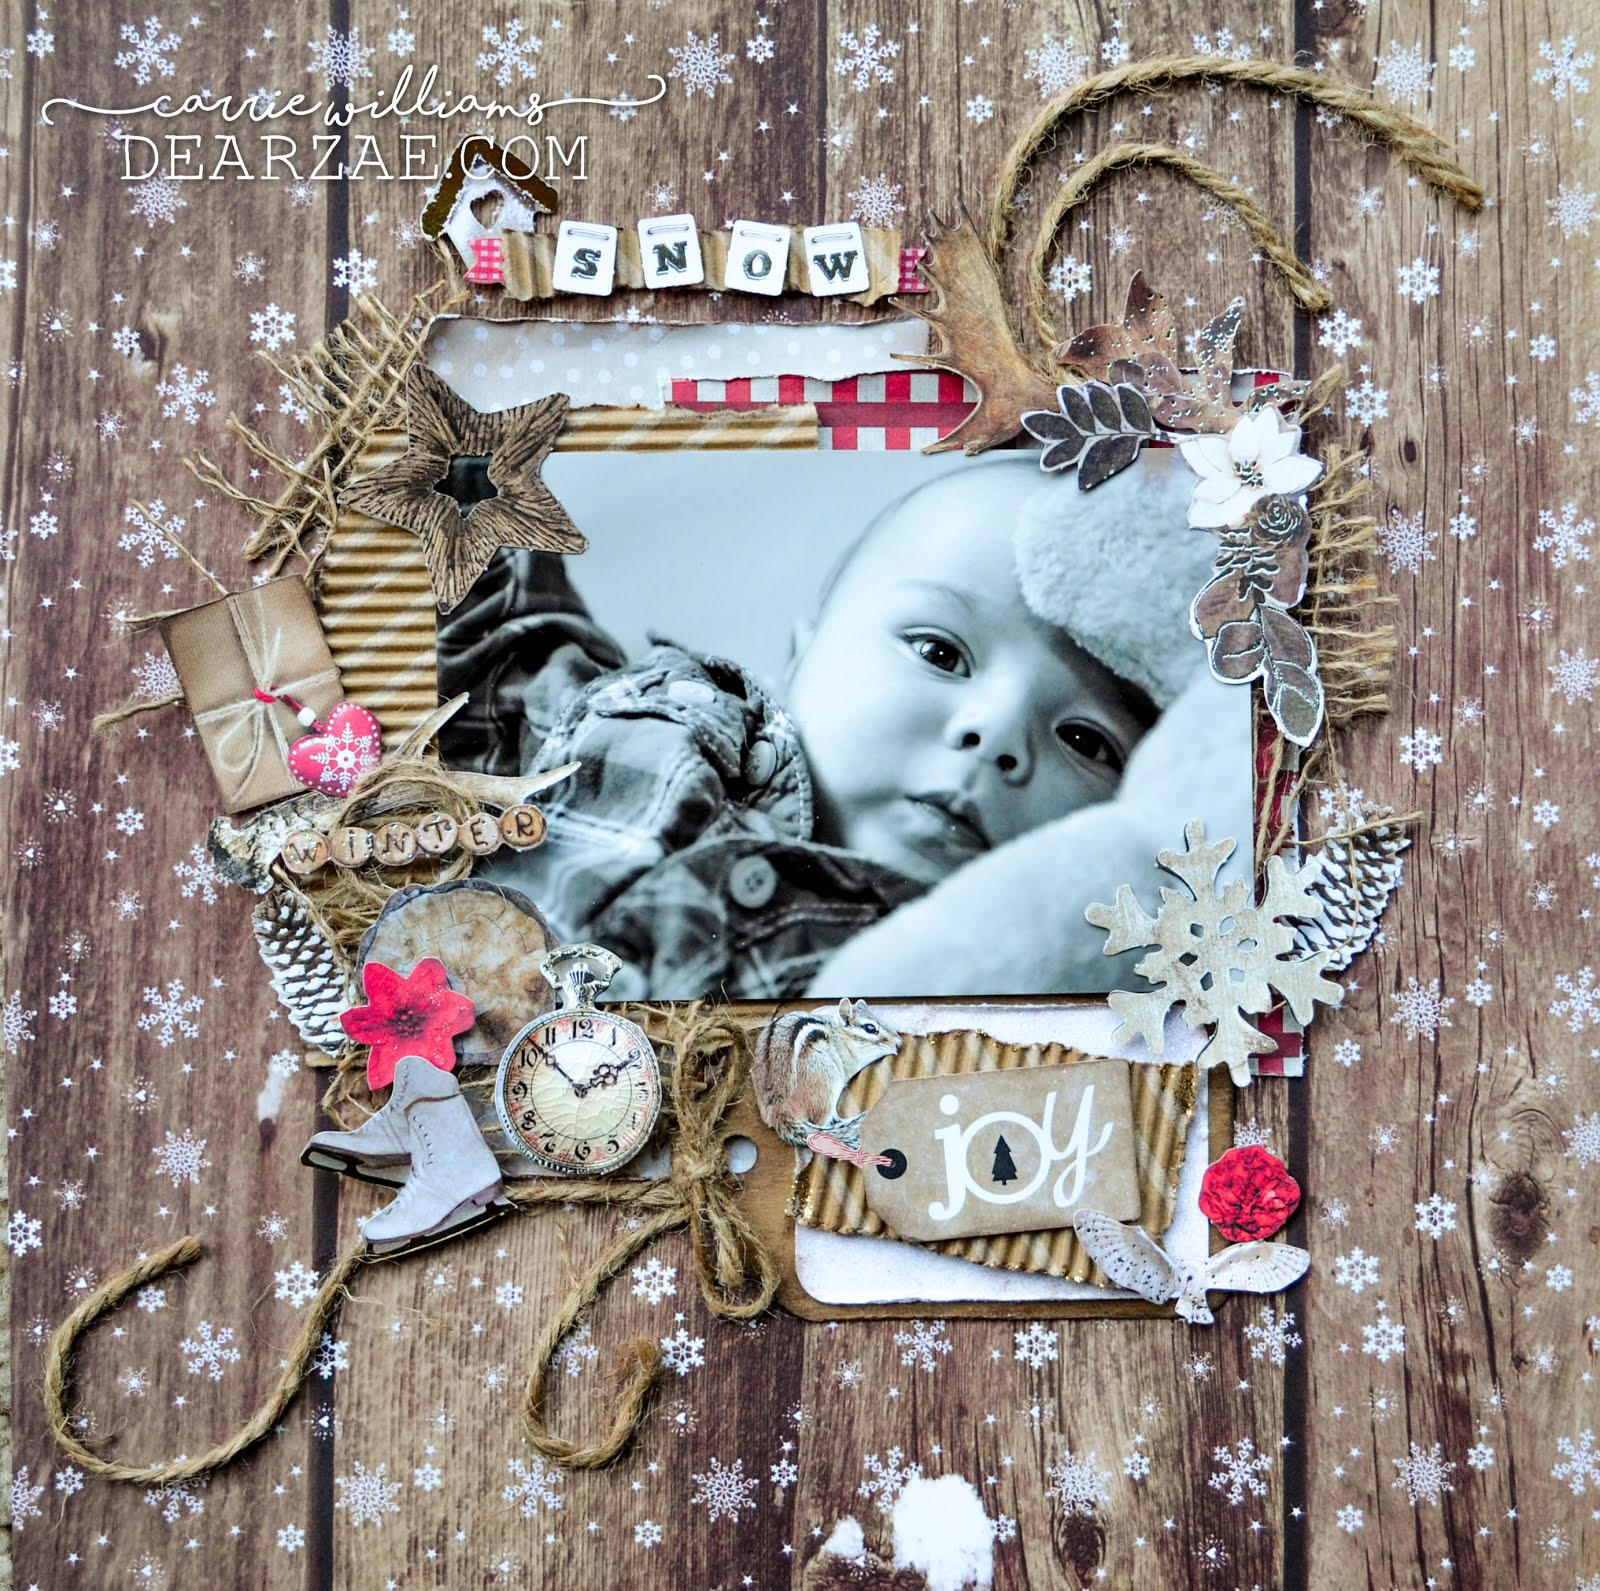 Rustic winter holiday Christmas scrapbook layout on woodgrain background, corrugated cardboard, burlap, jute, gingham plaid print, and snowflakes with die cuts including pinecones, wrapped packages, tags, owl, wood, clock timepiece, birdhouse, flowers, and ice skates